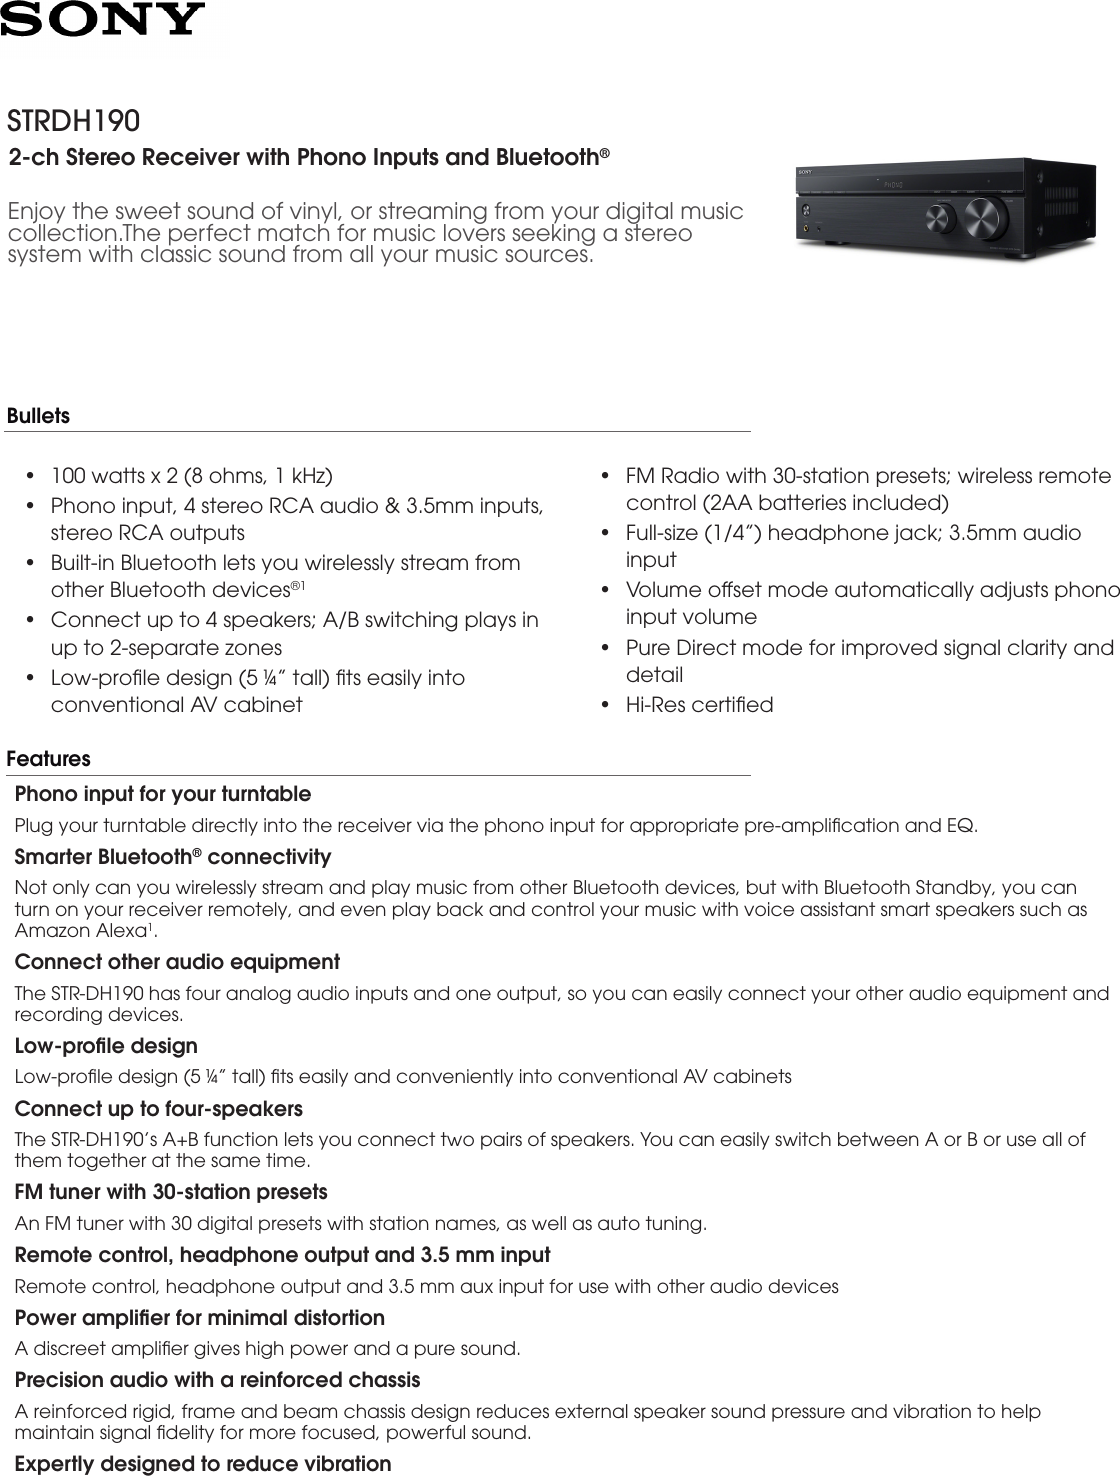 Sony STR DH190 User Manual Marketing Specifications Docget